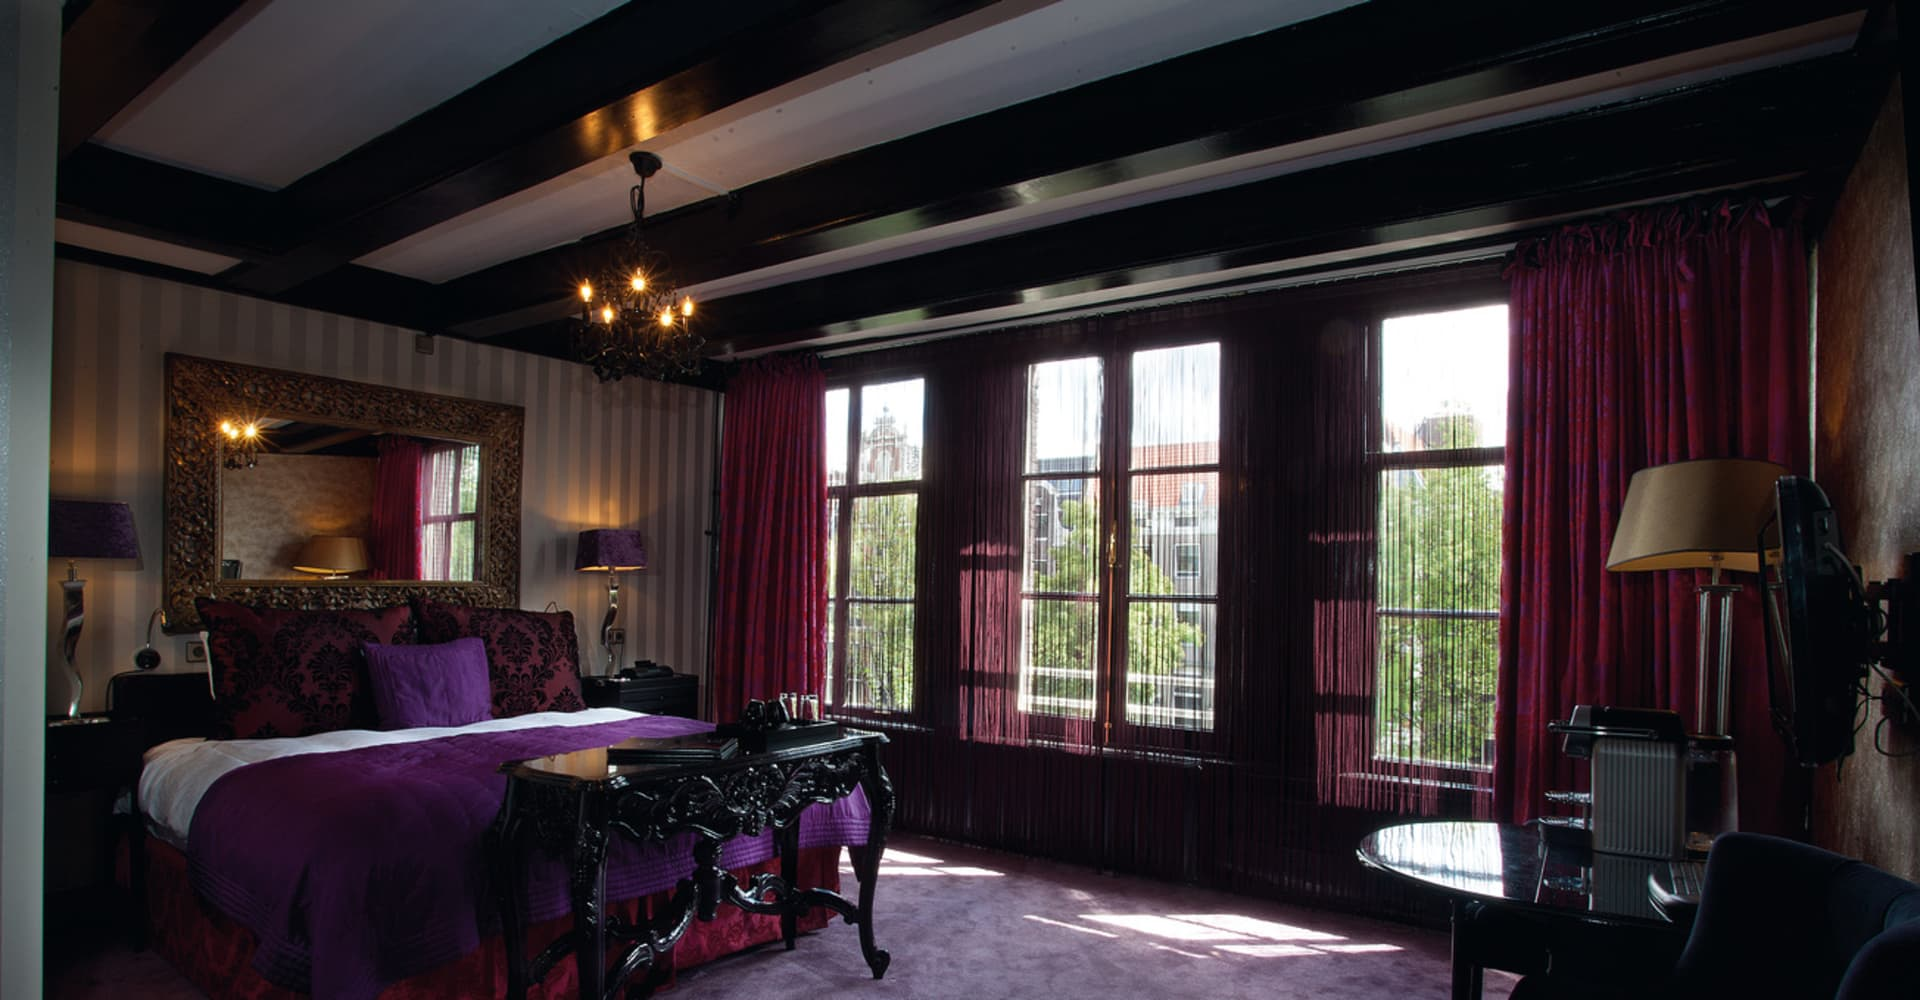 Deluxe room with canal view